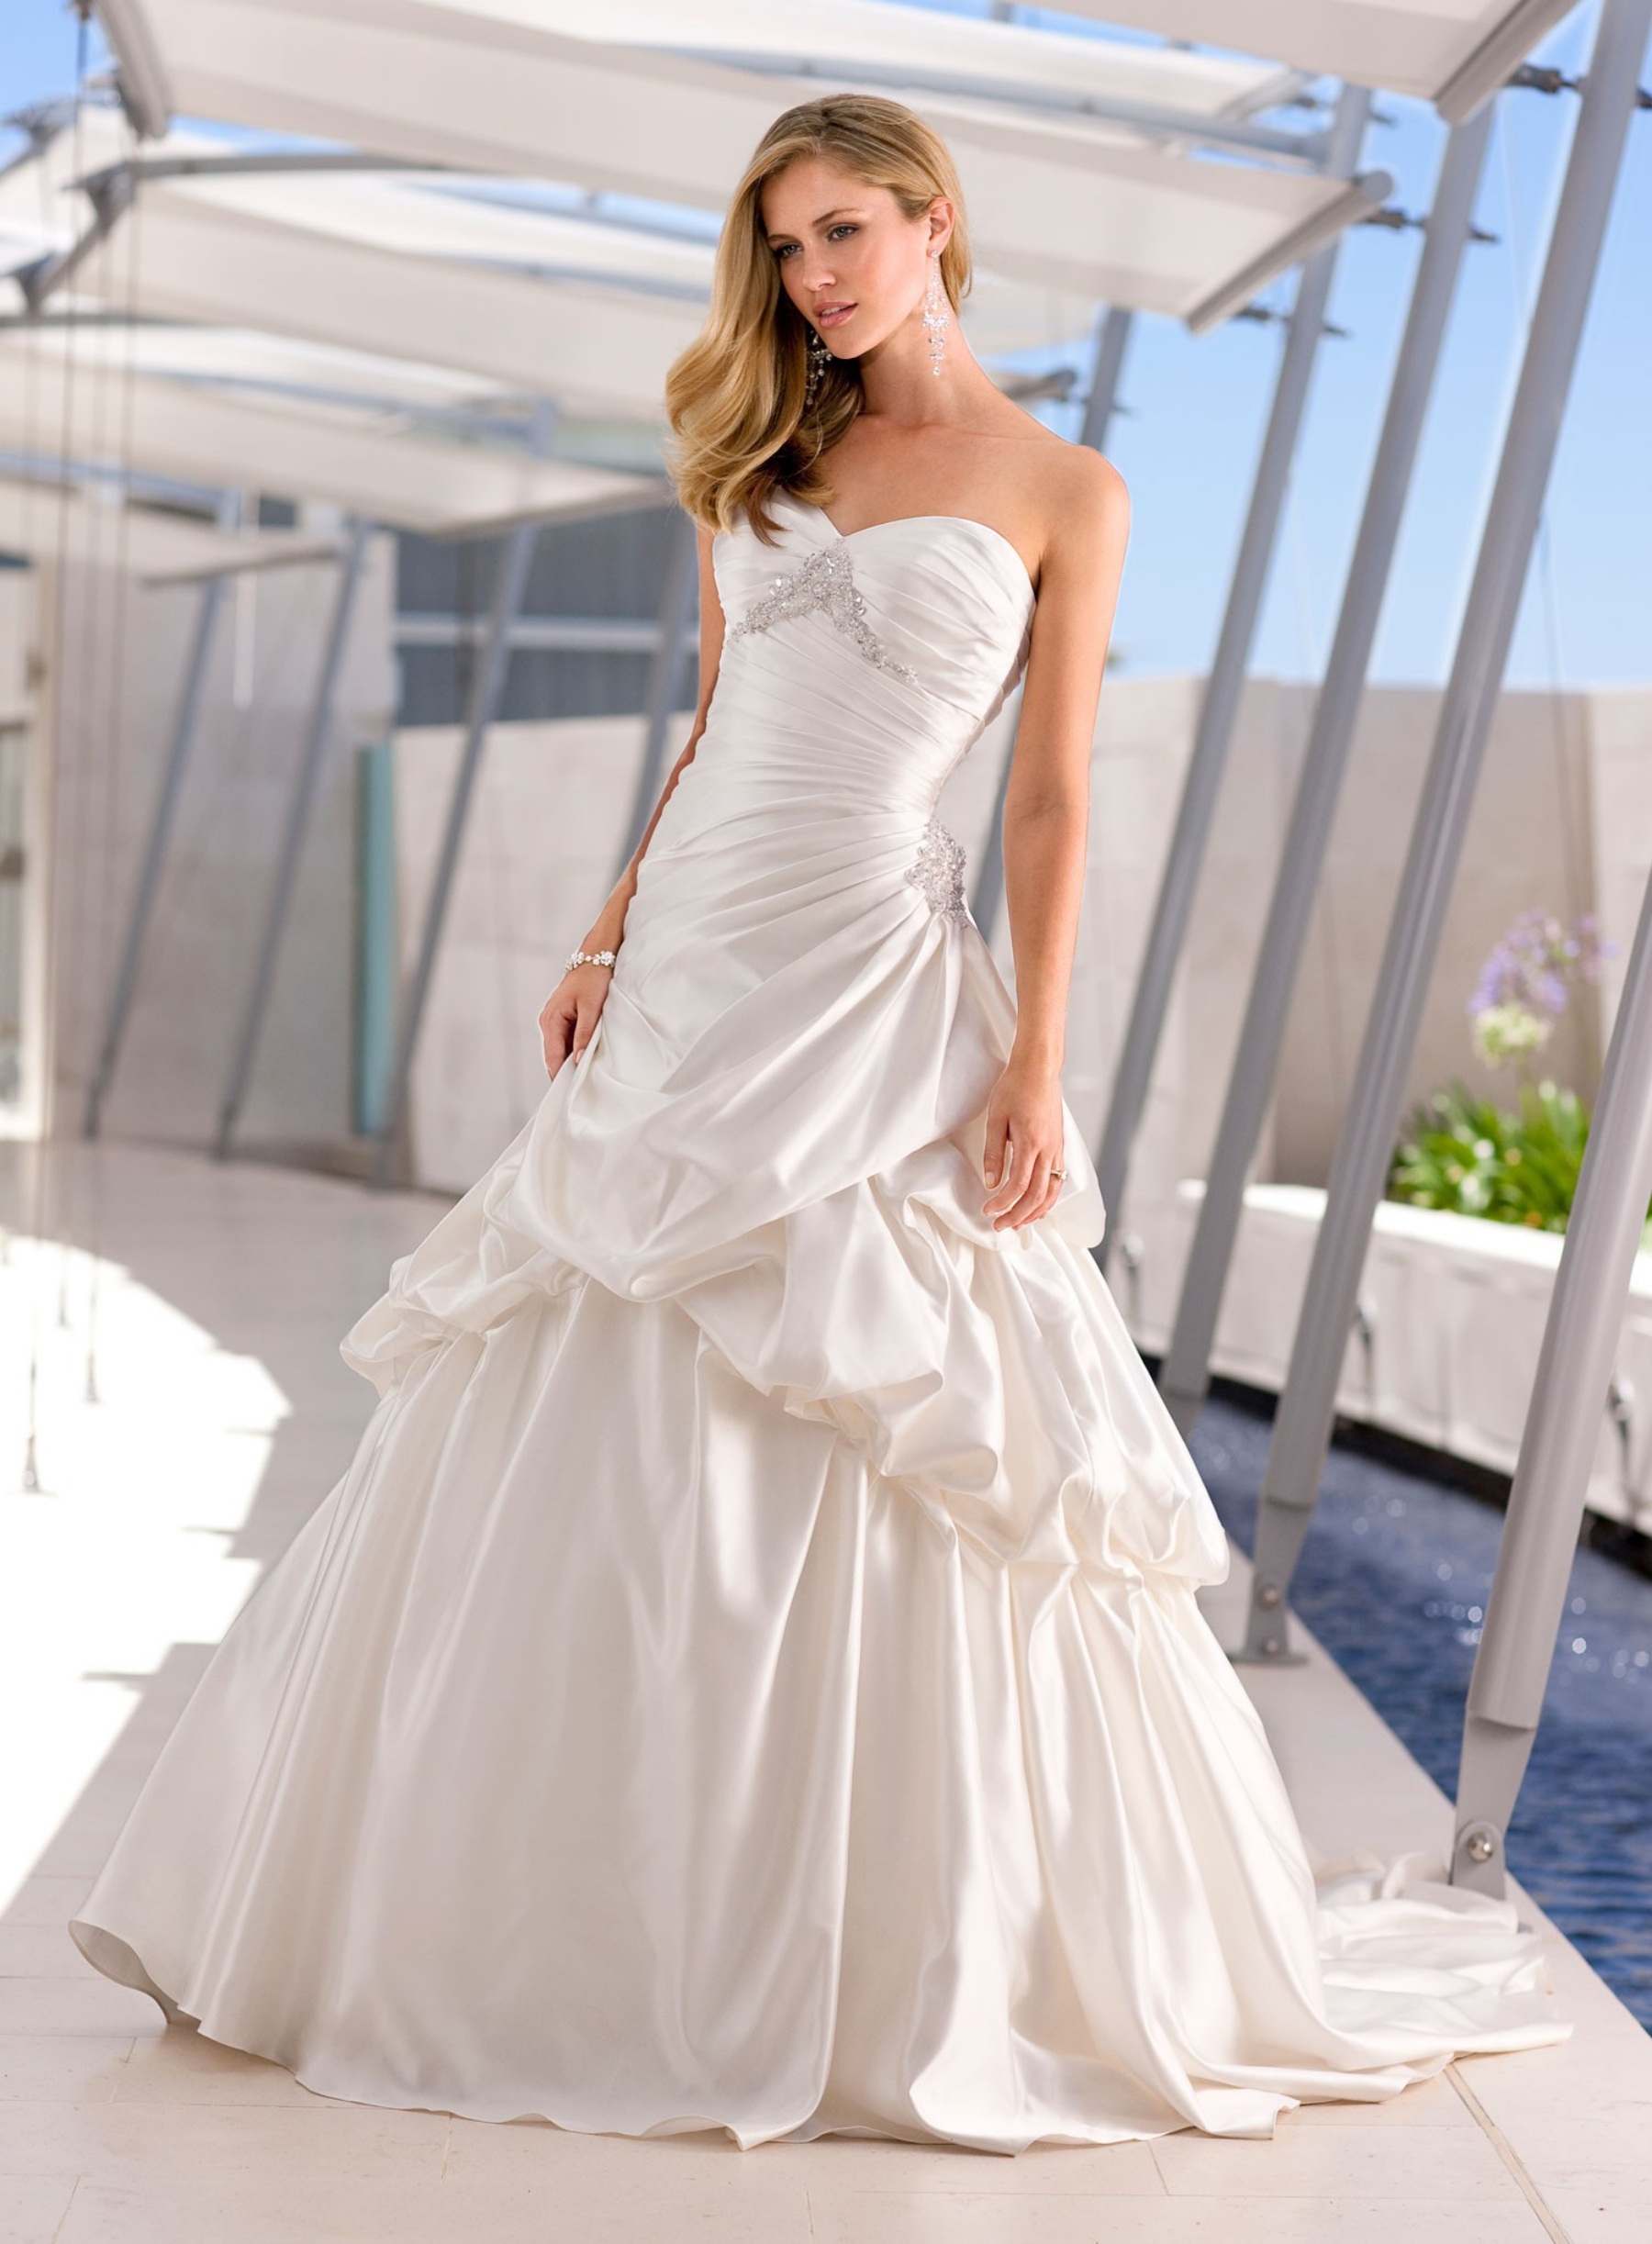 Browse our wedding dresses for sale, including plus size wedding dresses online now!Fast Shipping · Made To Order · Individually Cut · Free-Shipping SwatchesTypes: Garden Wedding, Beach Wedding, Churh Wedding, Reception.